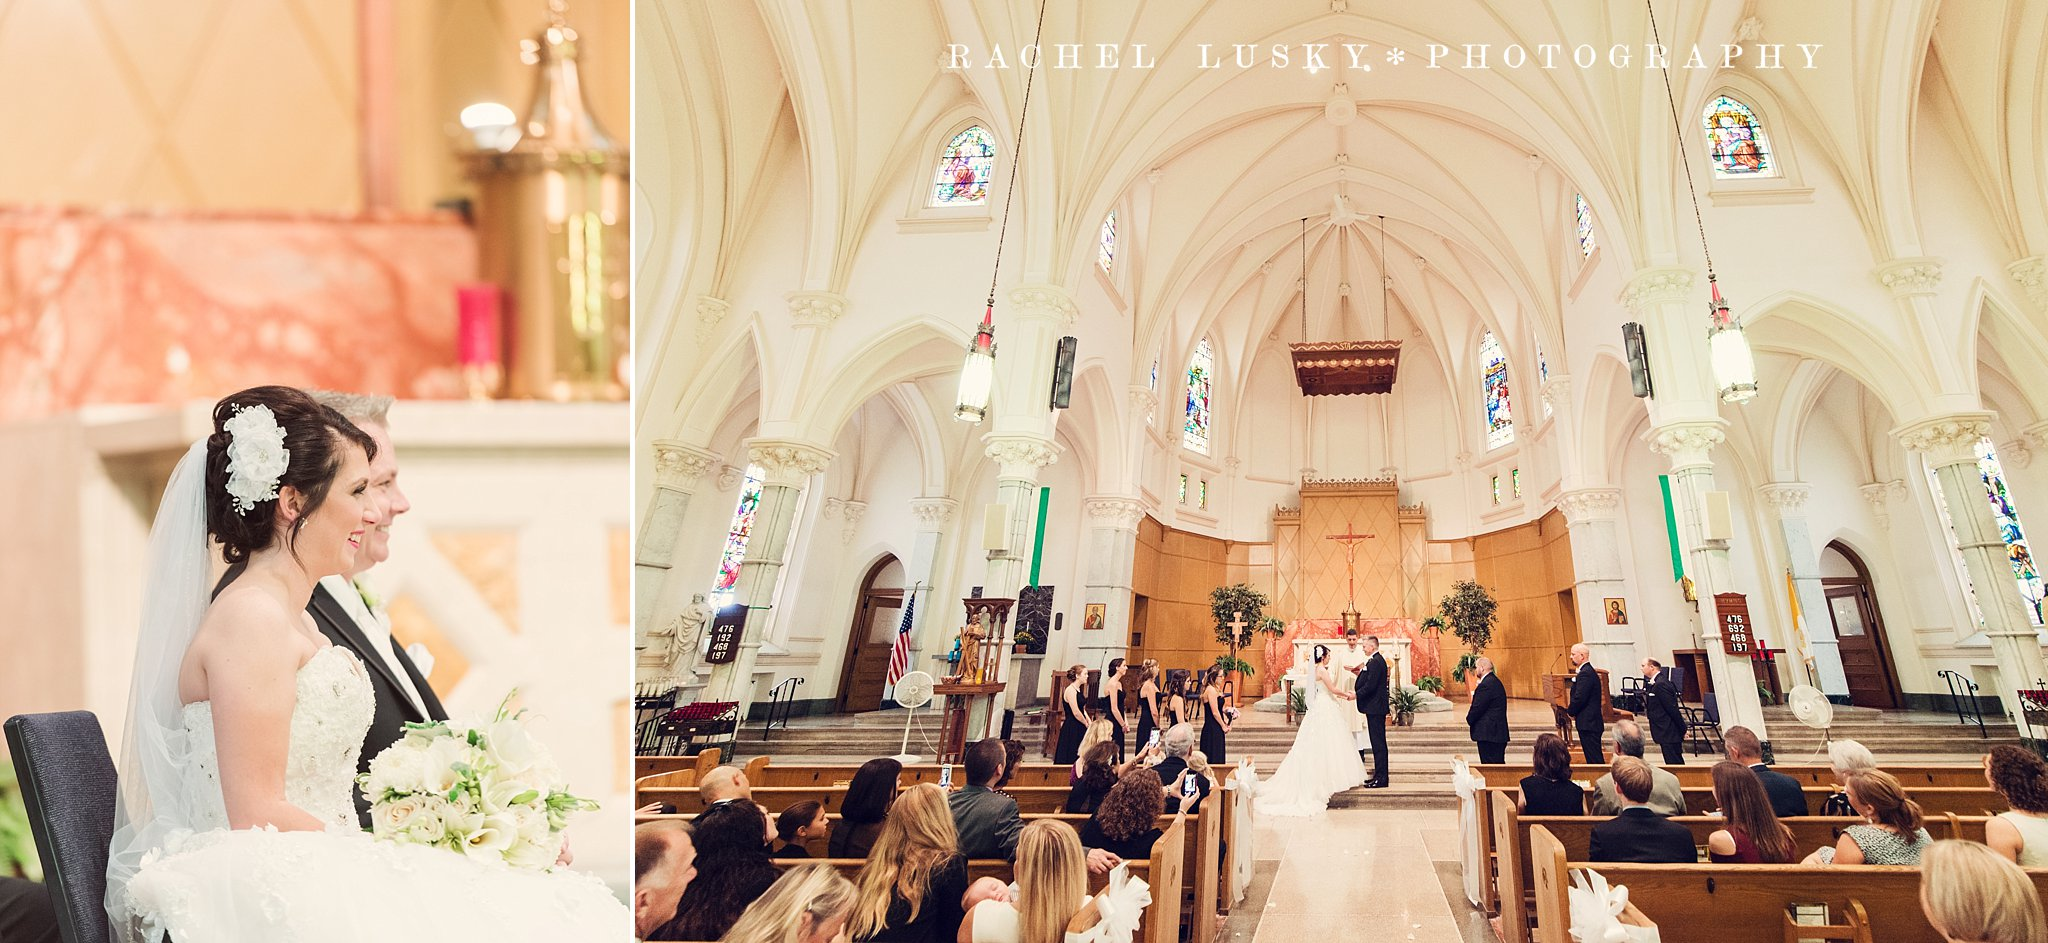 Saint Andrew's Episcopal Wedding Photography